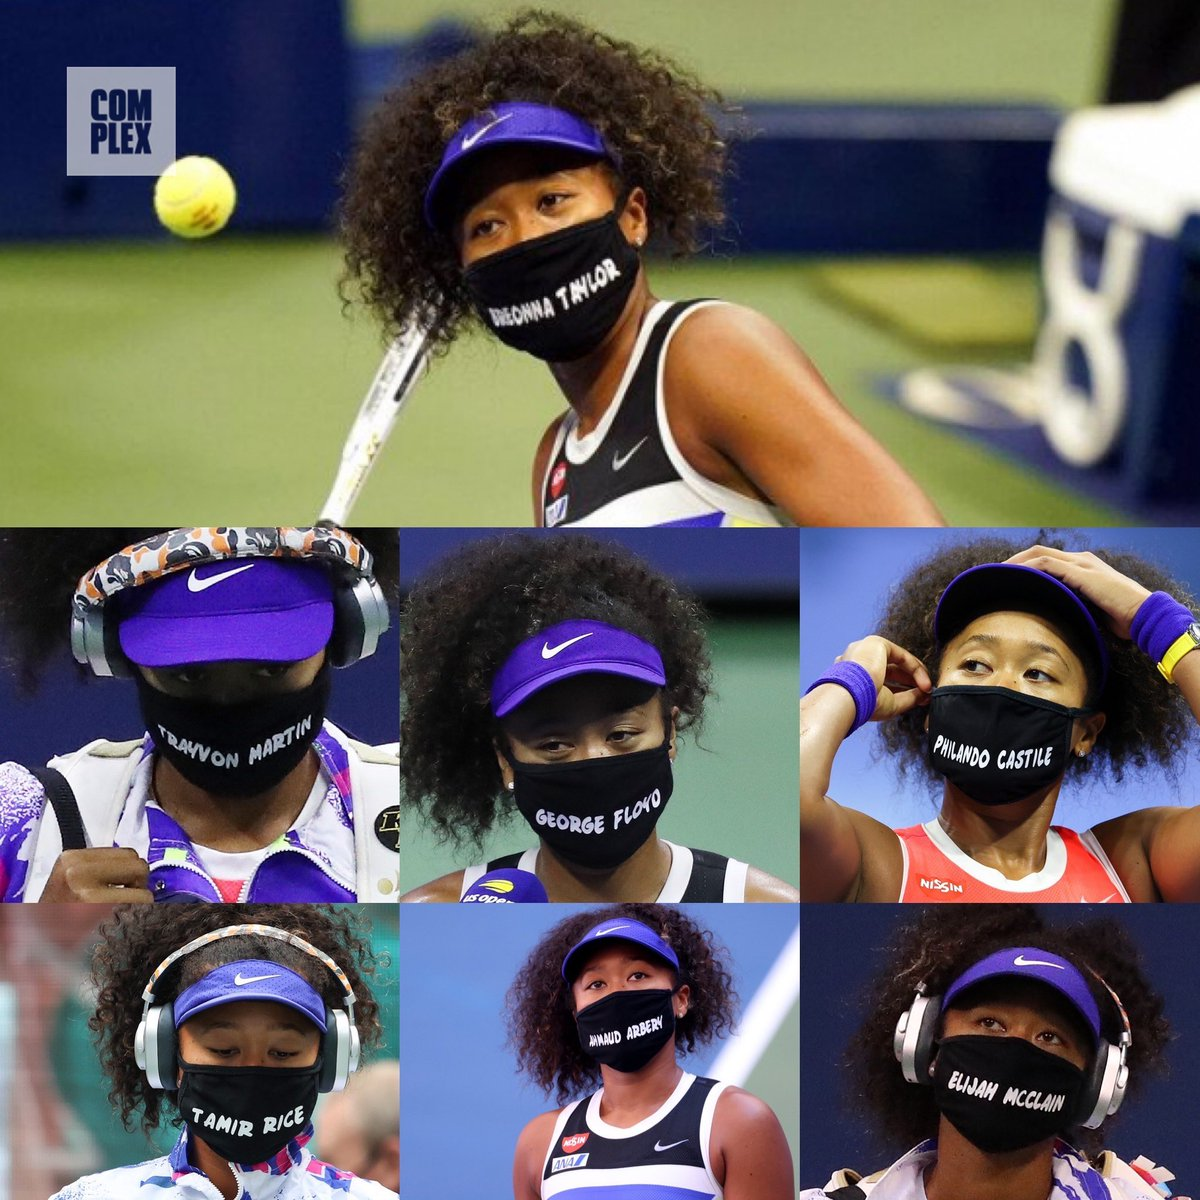 Kind of emotional about Naomi's win. Black women are trying to heal themselves, their families, their communities, and are still expected to show up and serve as an inspiration all while fighting everyday to prove that we deserve better. We salute you @naomiosaka. #USOpen https://t.co/1ZmSELmtp8